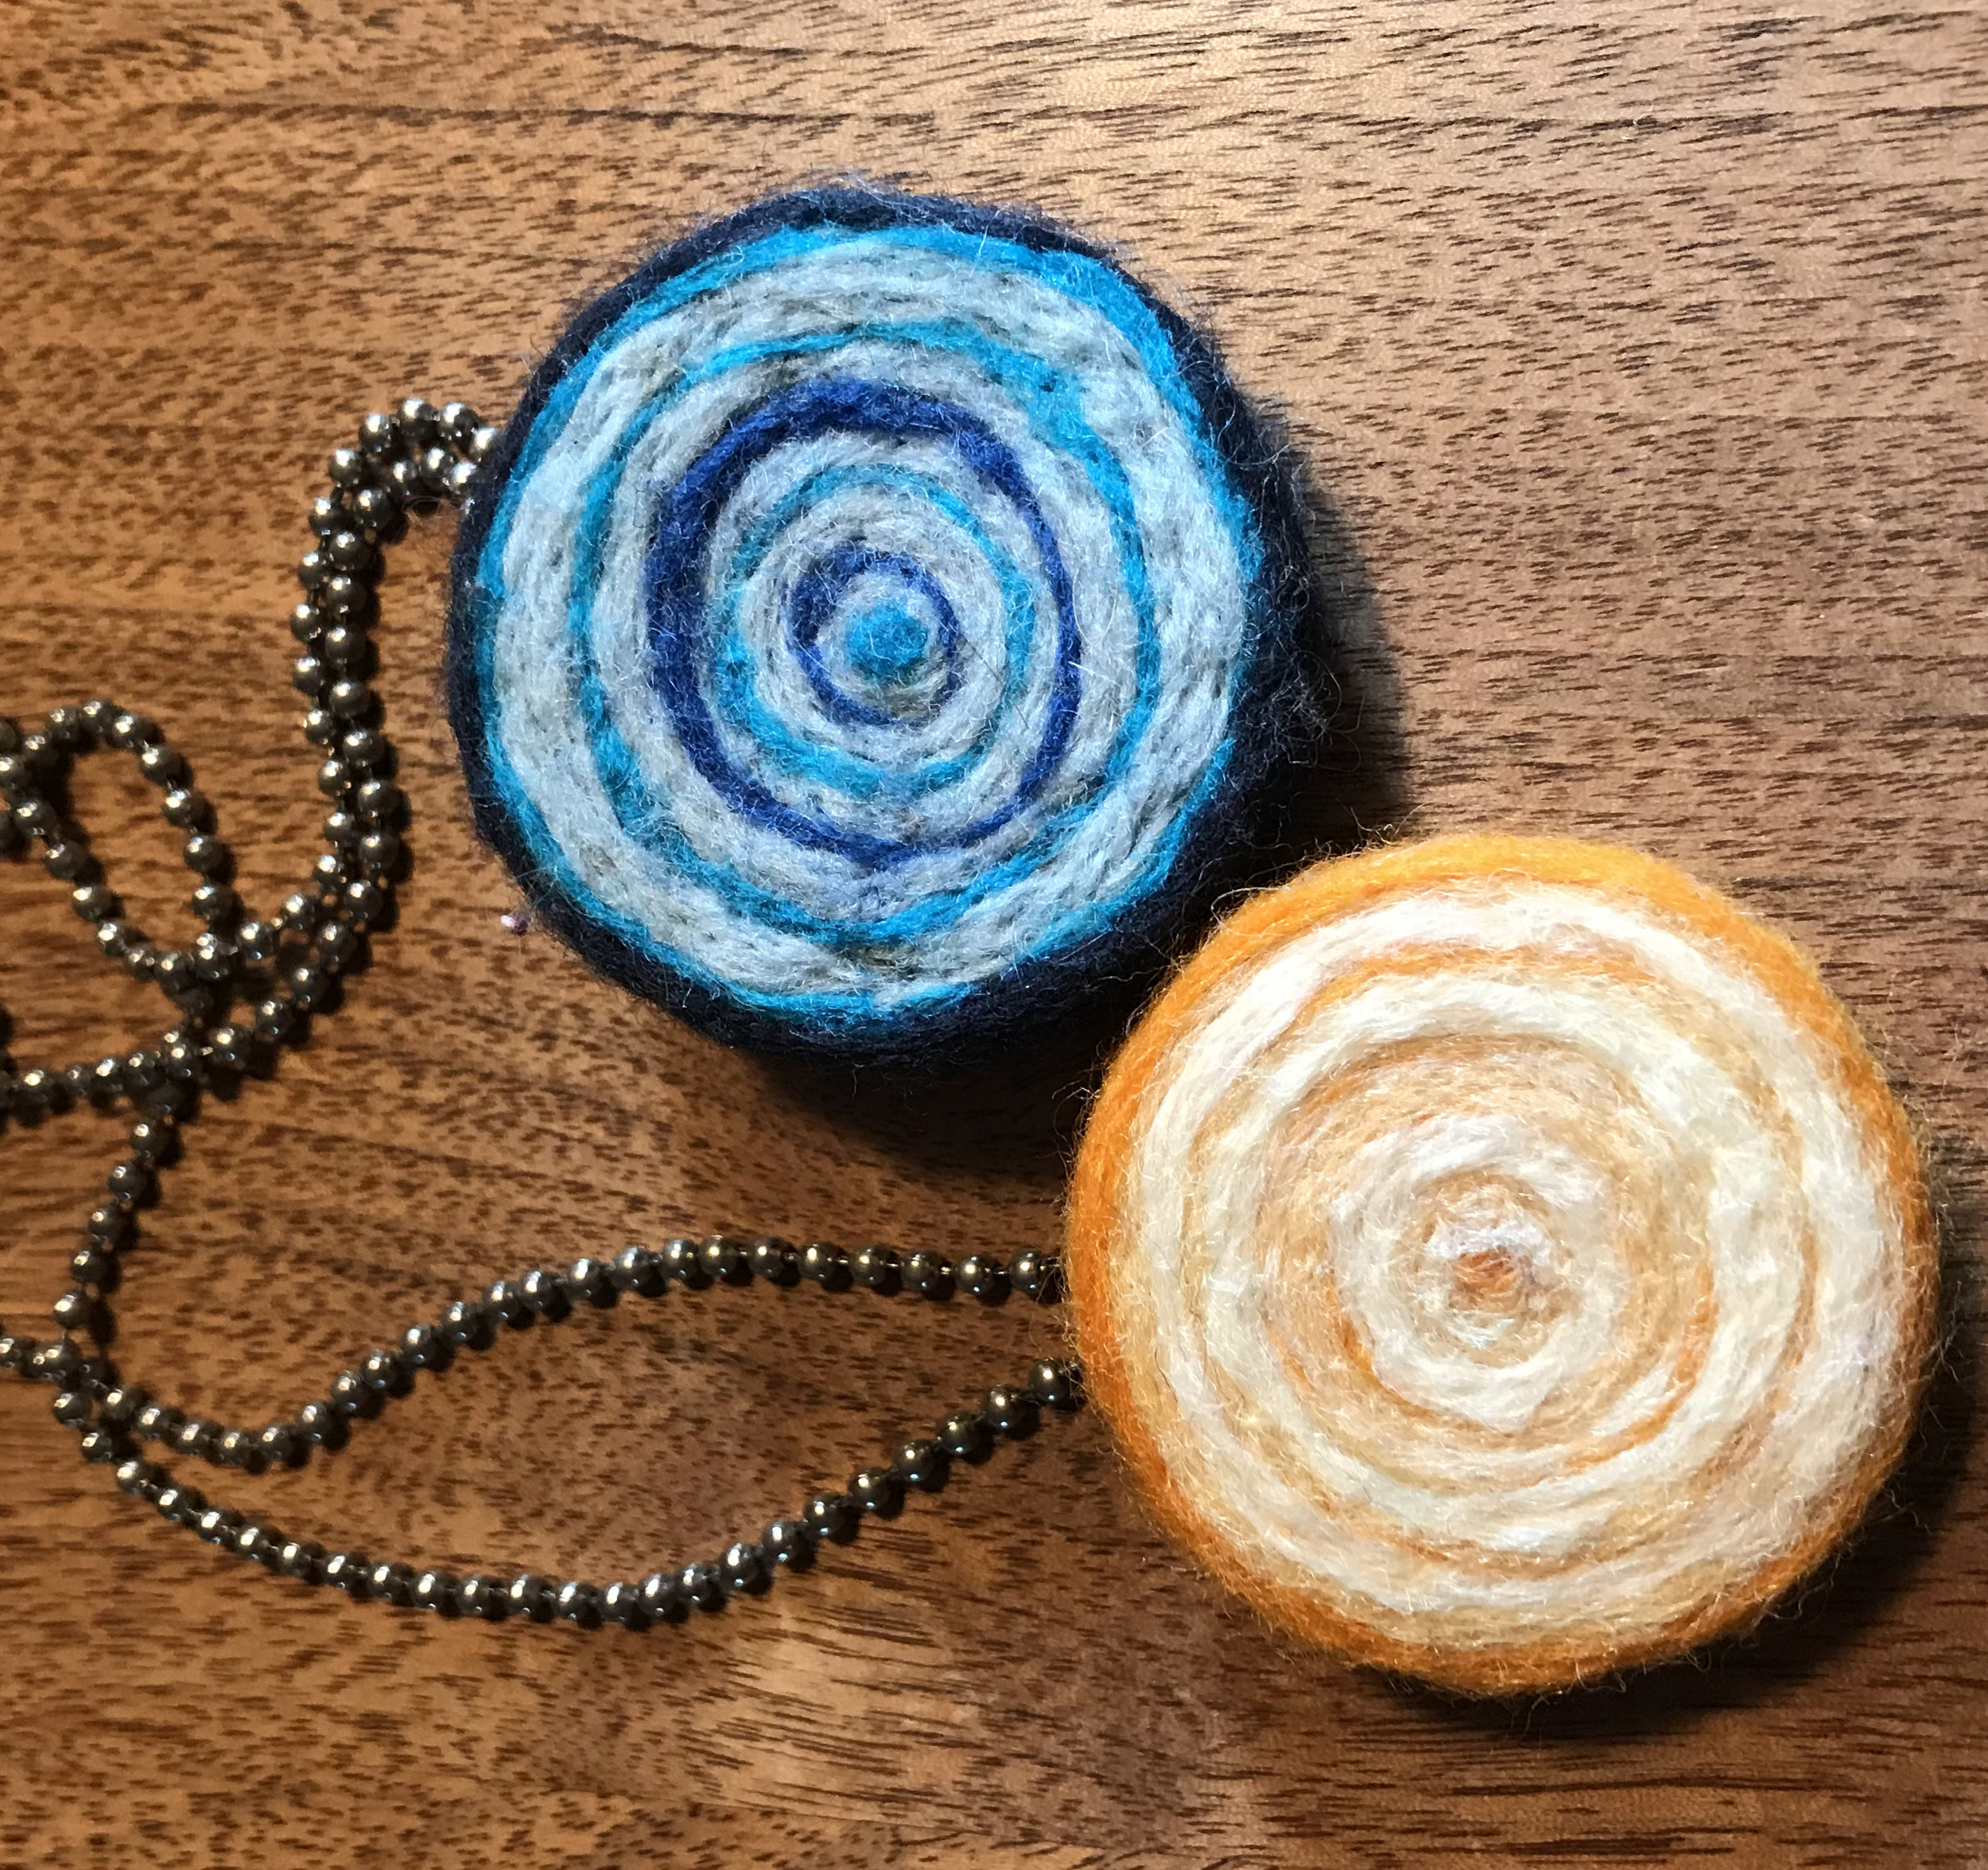 With a nice stainless backing, these fuzzy necklaces won't itch sensitive skin!